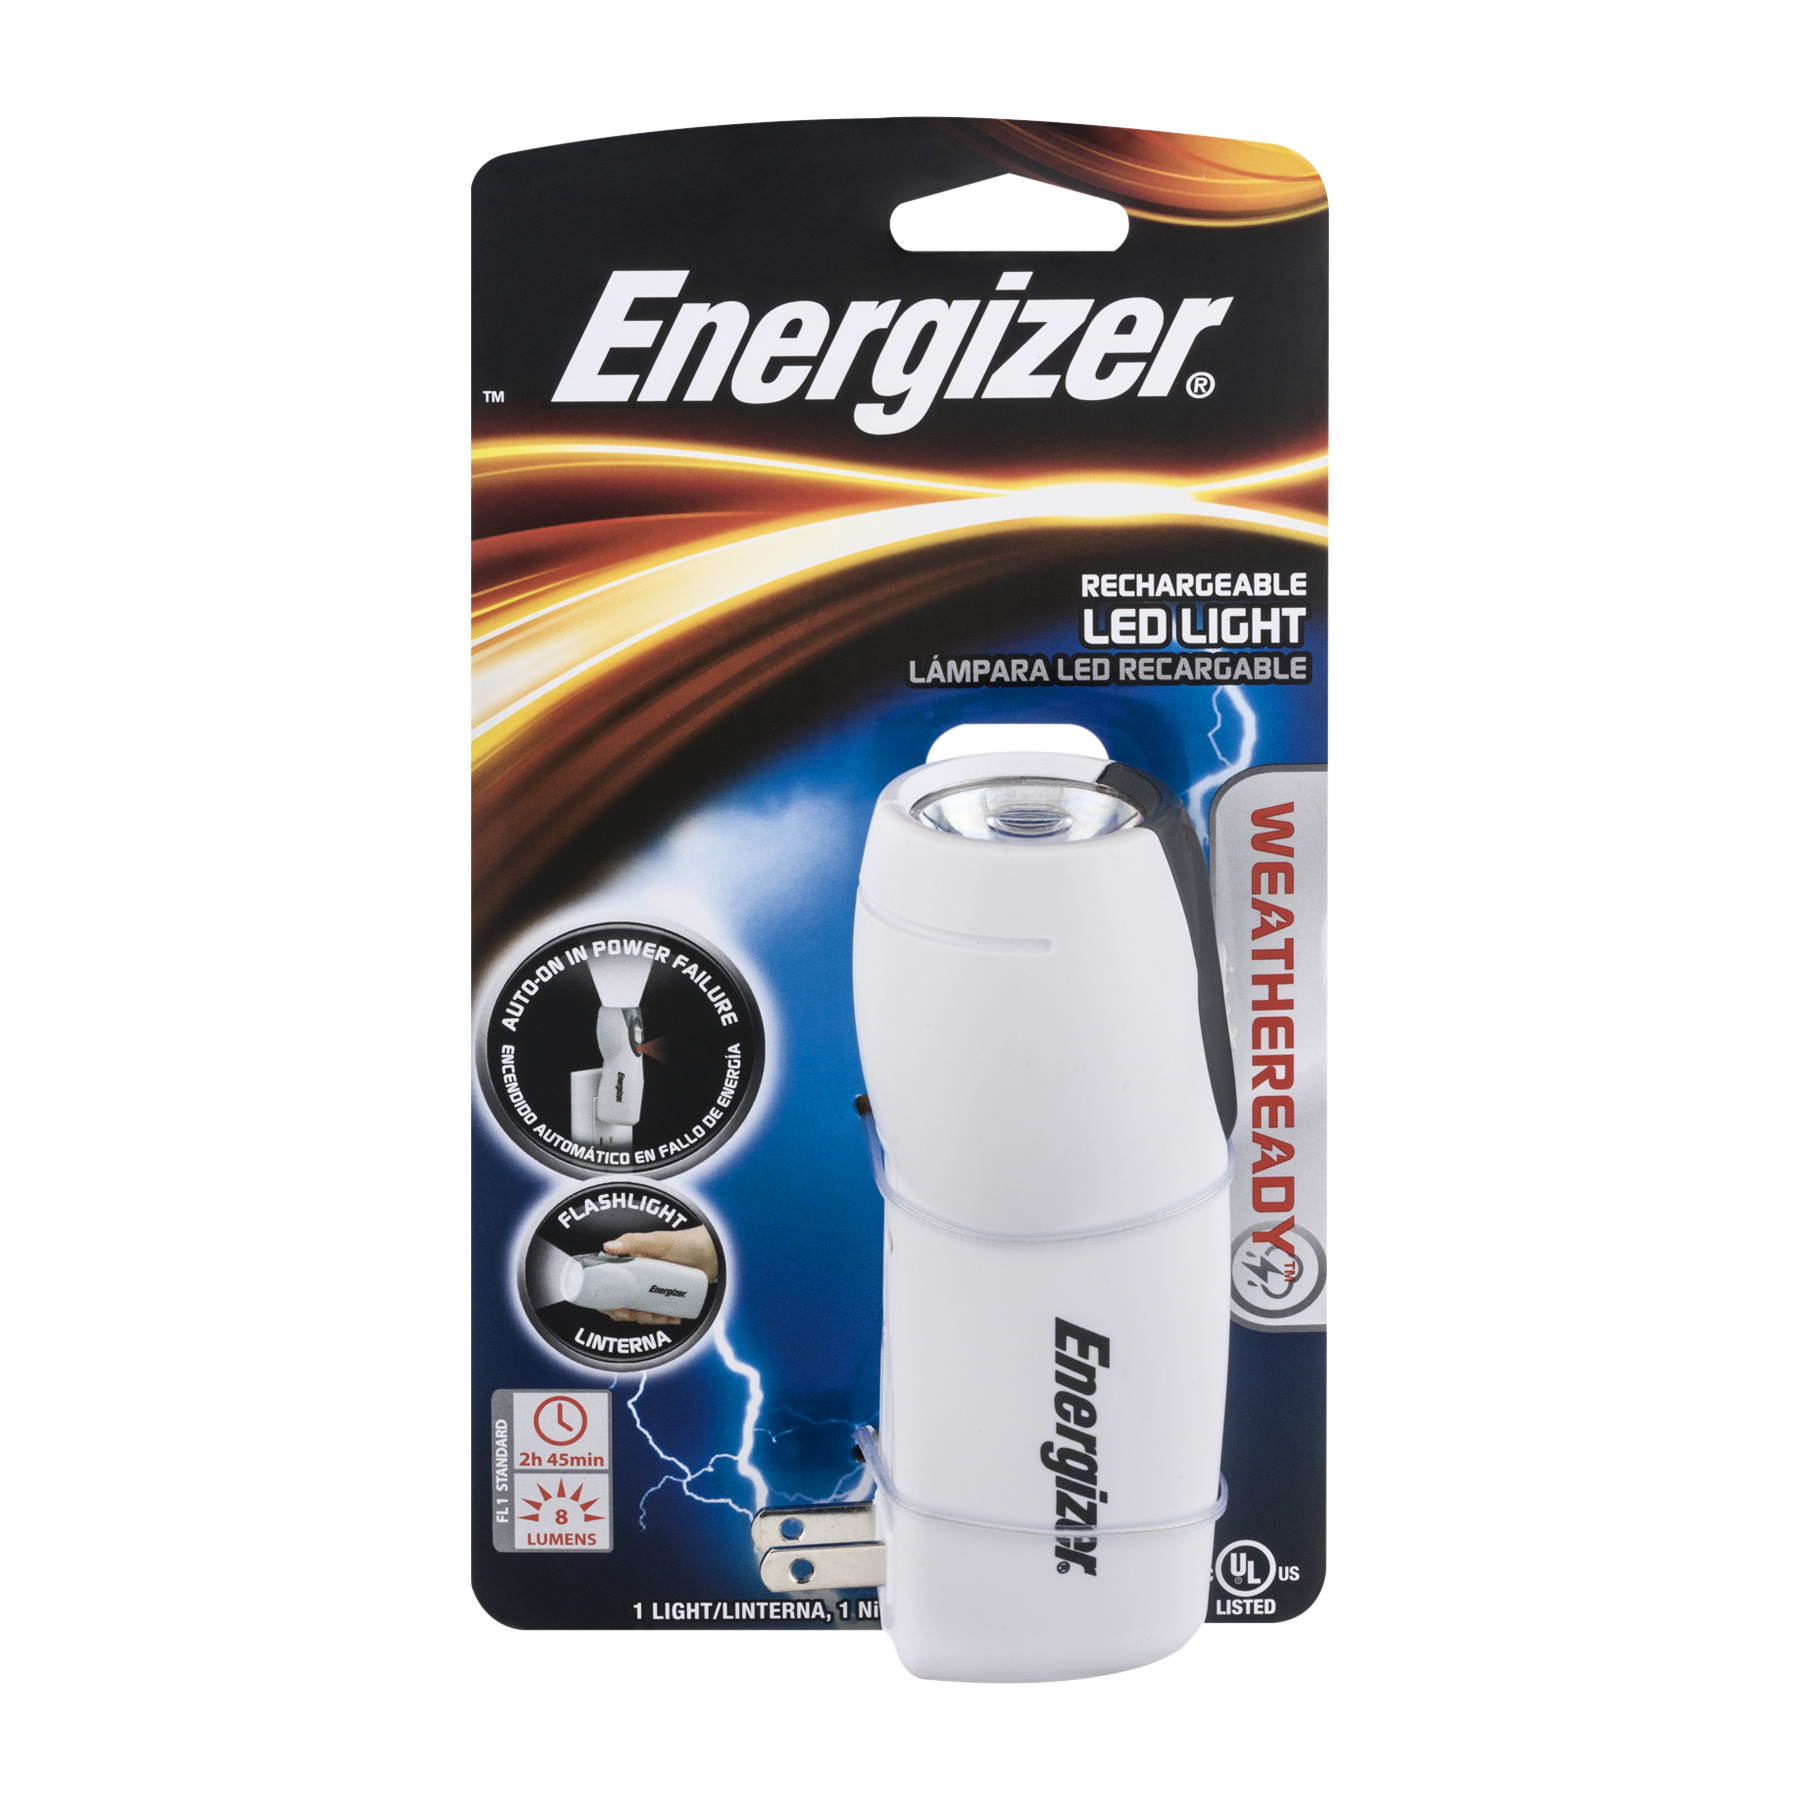 Energizer Rechargable LED Light Weatheready, 1.0 CT